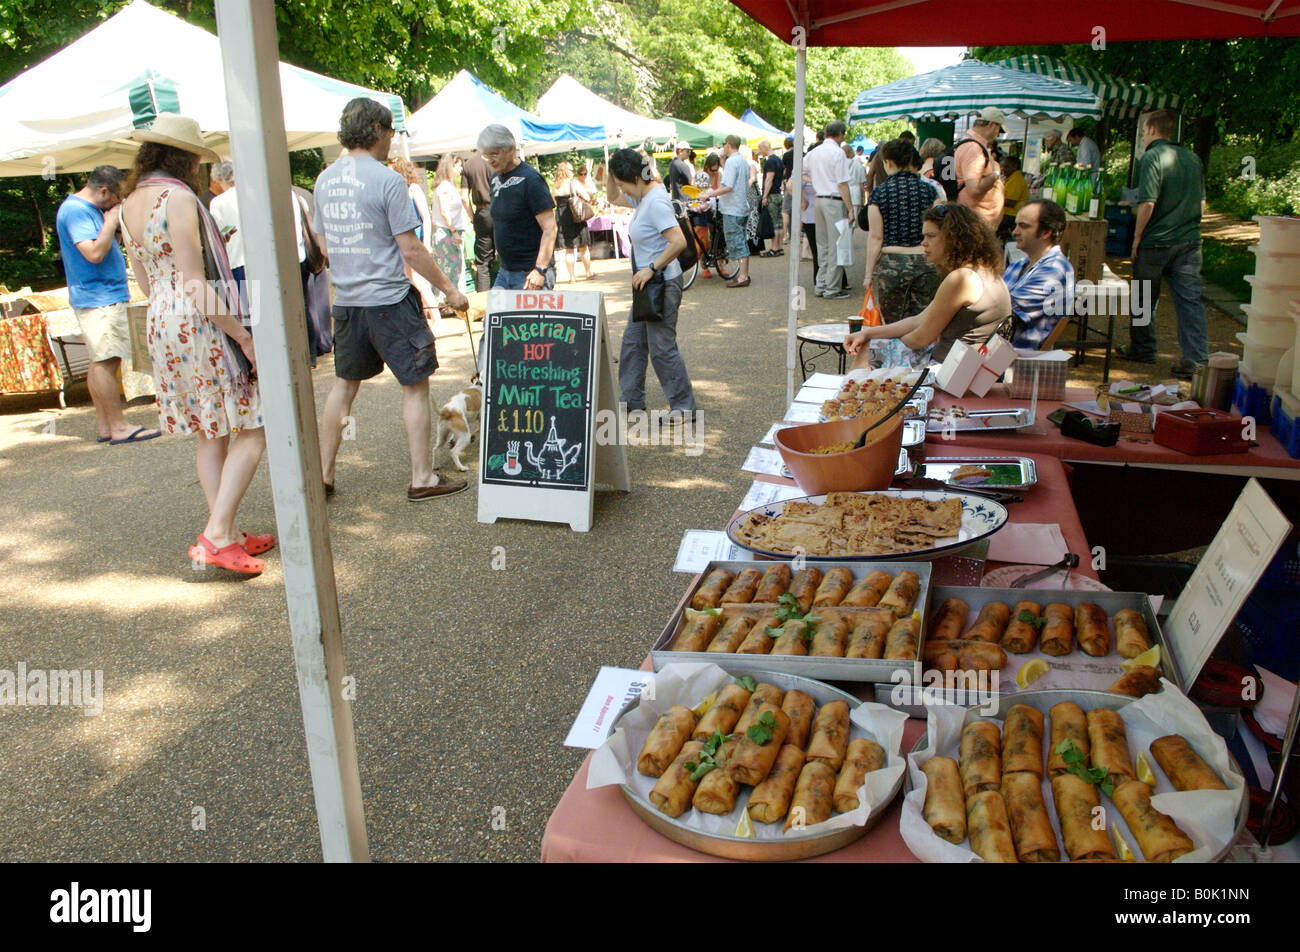 A farmers market in Alexandra Palace, North London - Stock Image